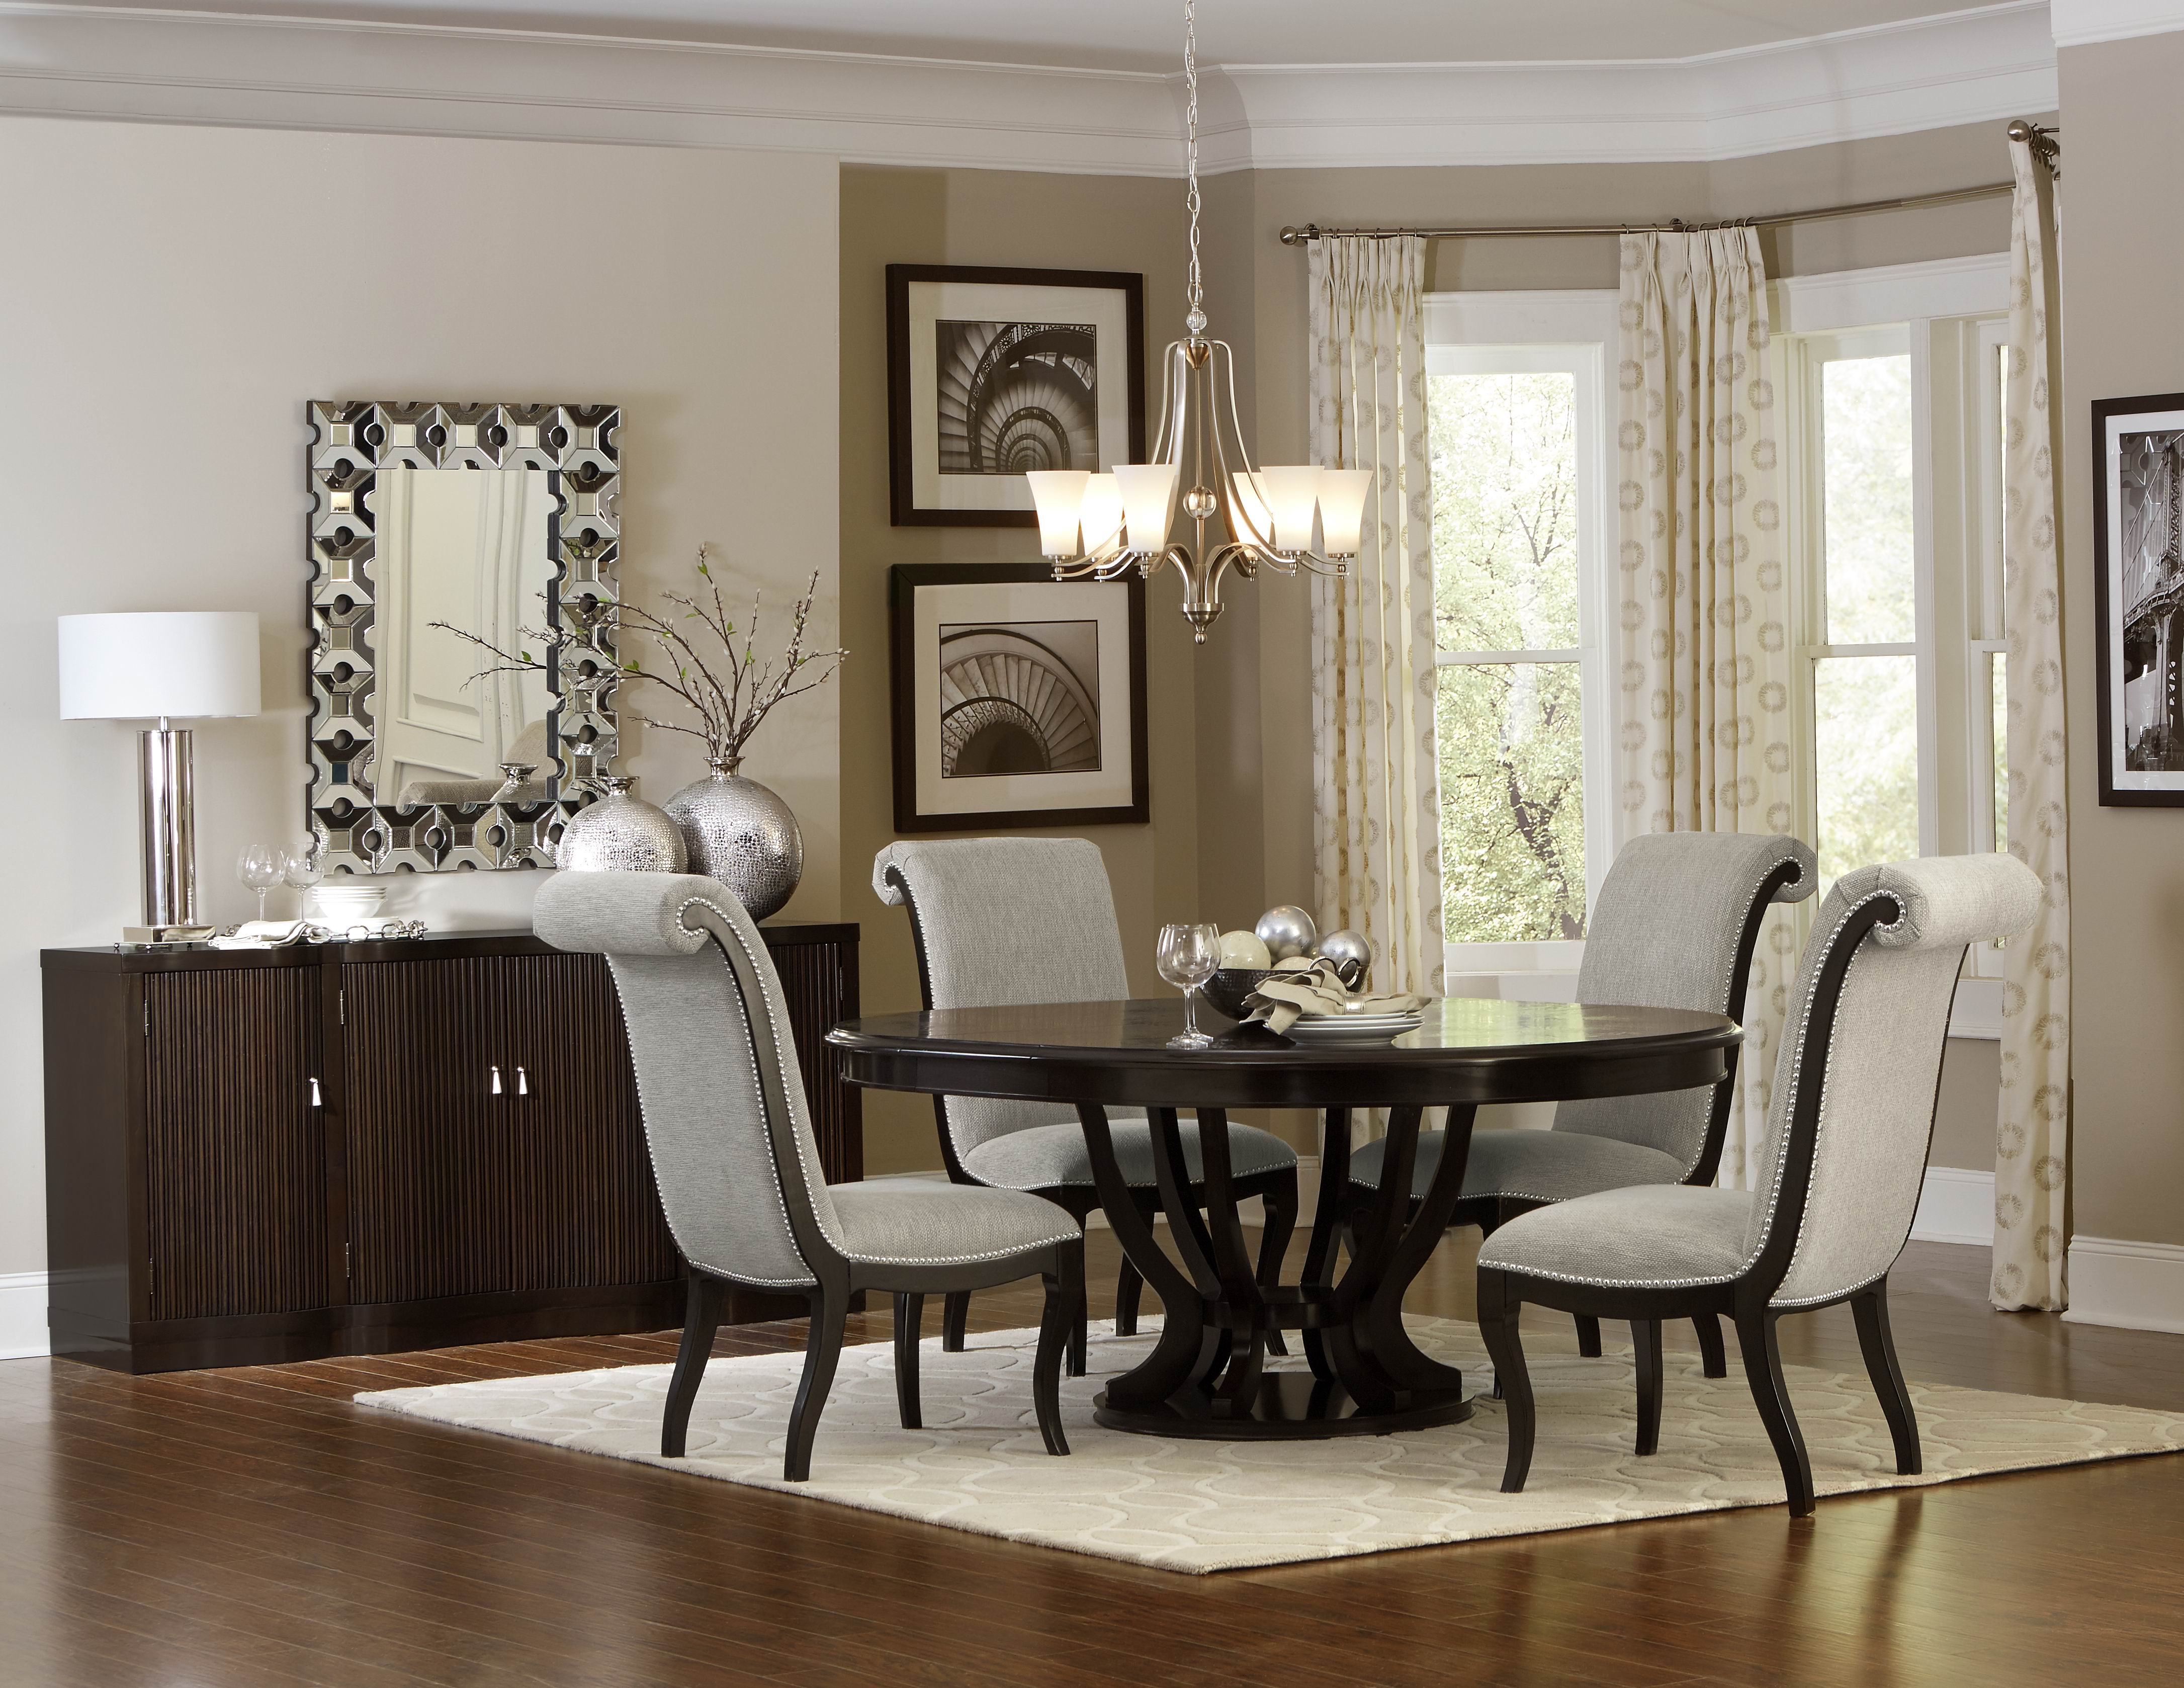 Savion Collection Contemporary Style Espresso & Natural Tone 5 Pc Oval Design Dining Table Set Inside Contemporary Espresso Dining Buffets (View 23 of 30)